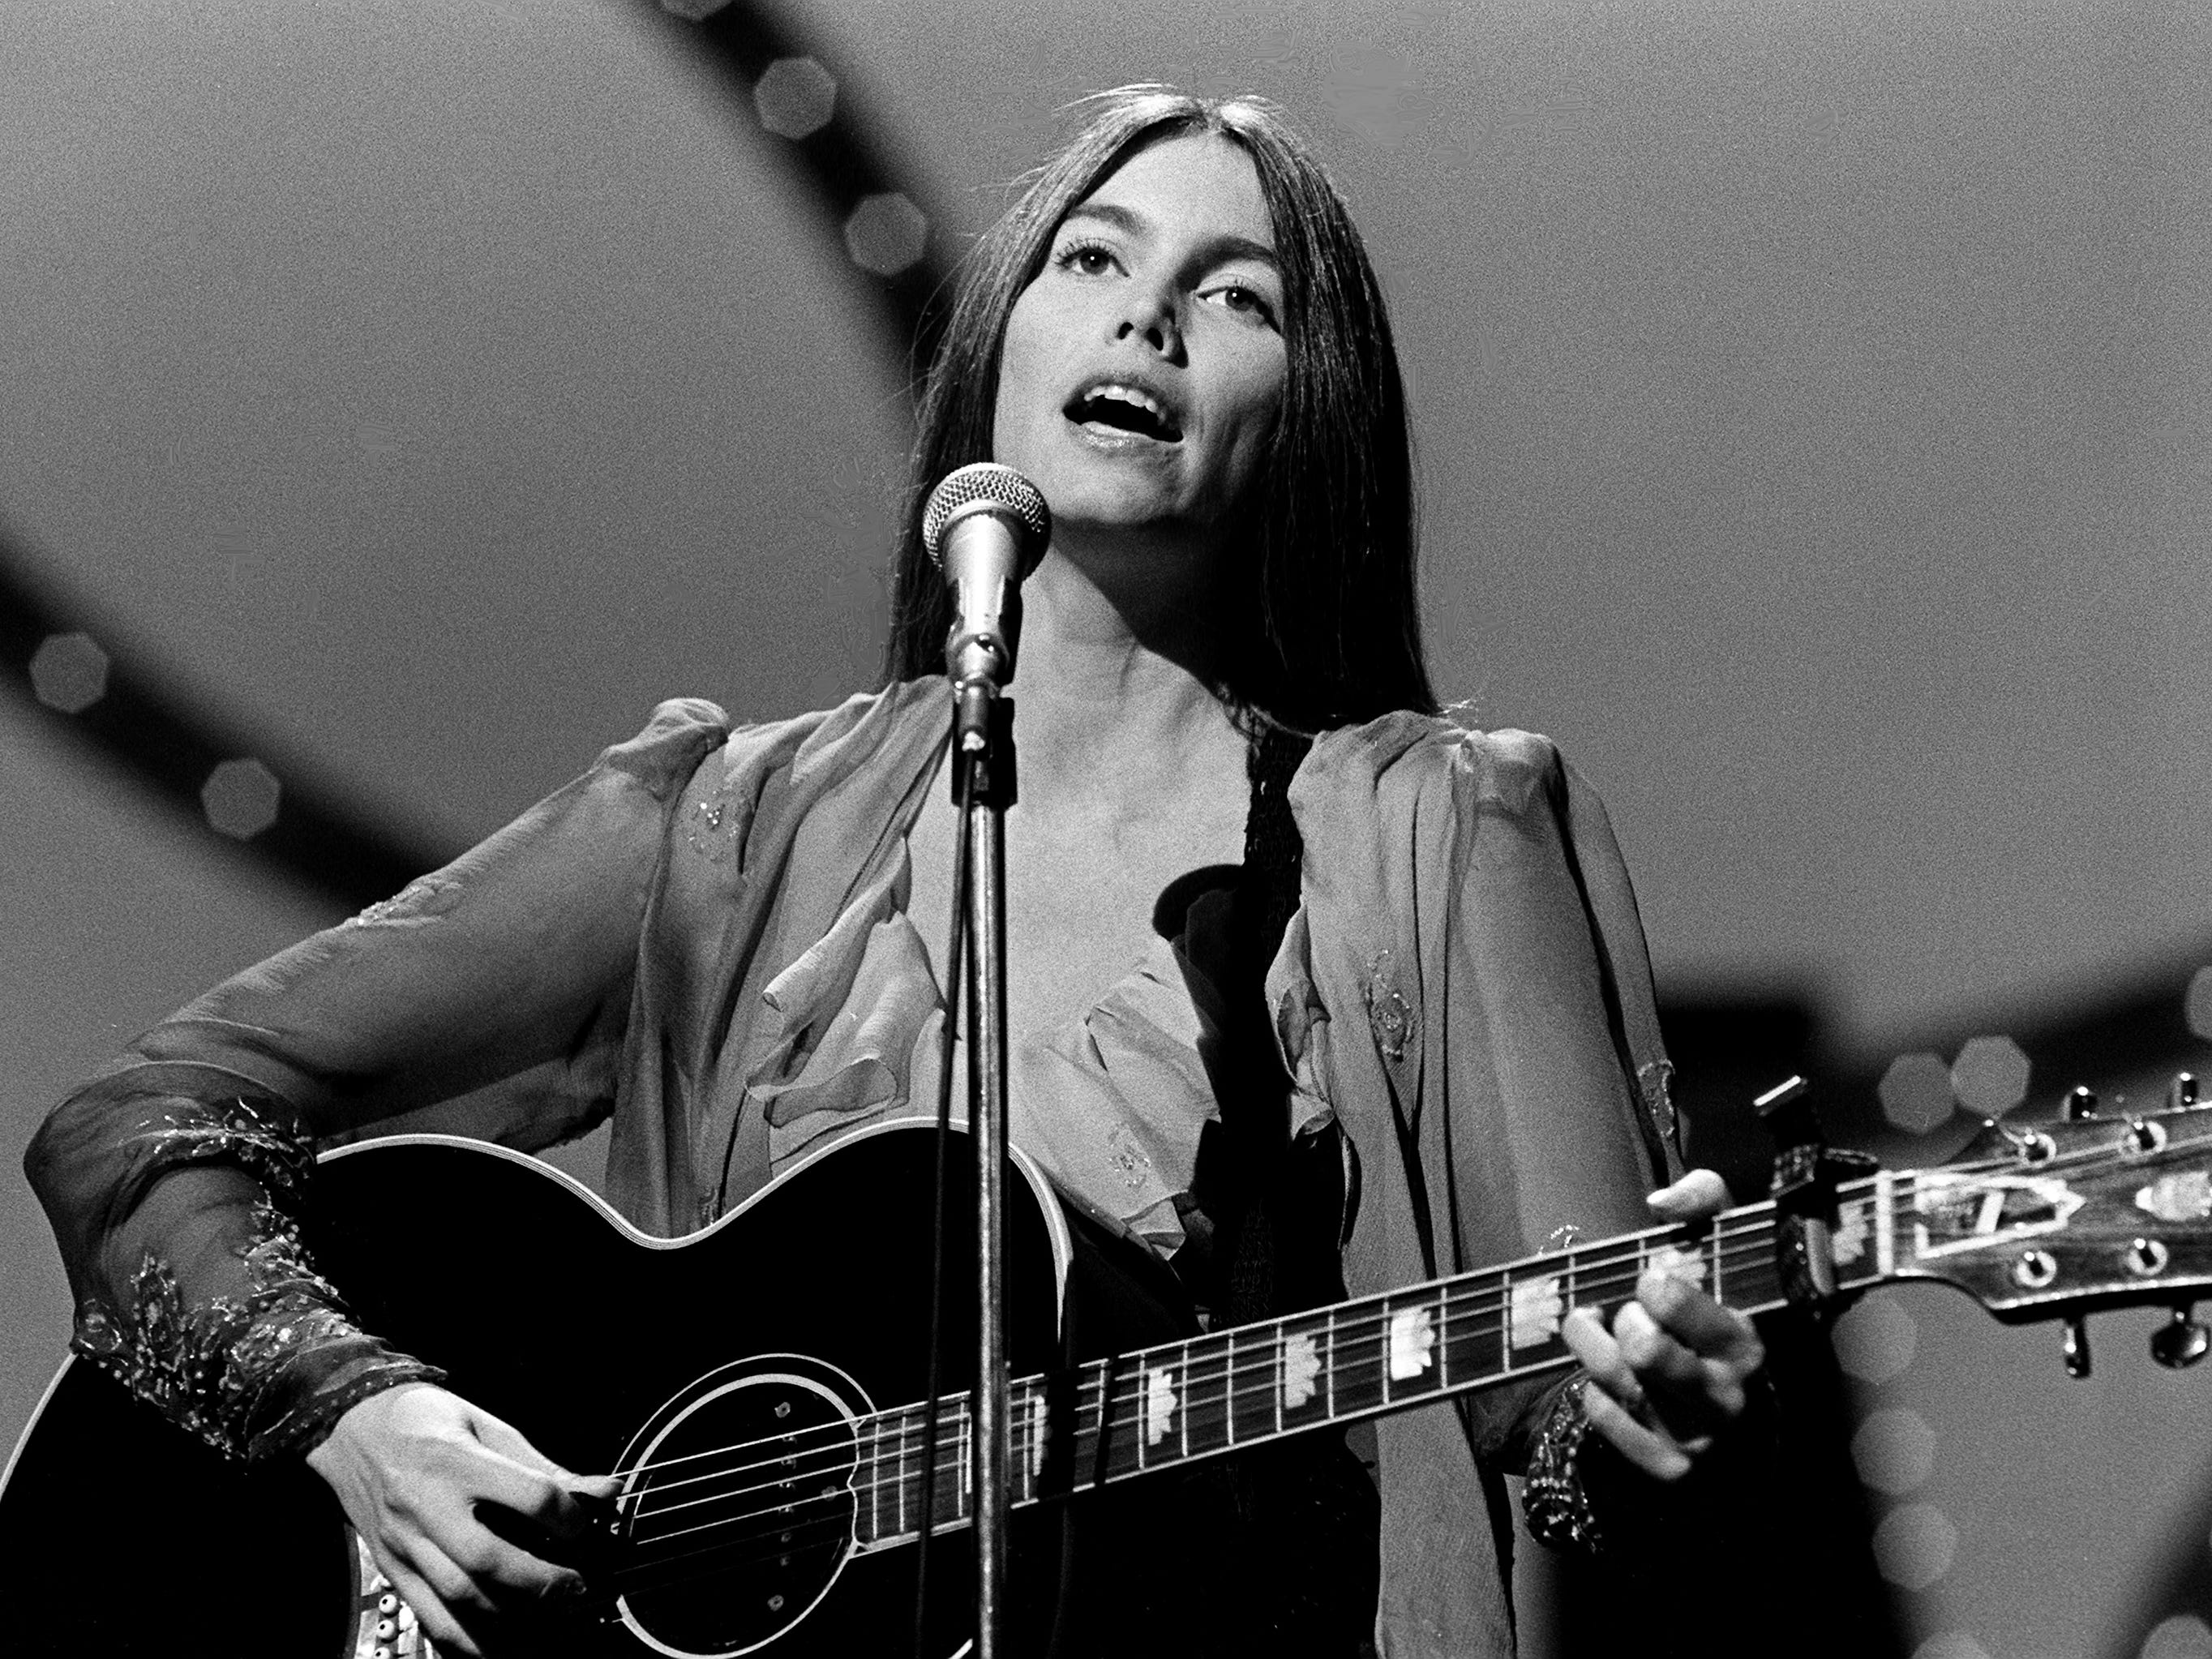 Emmylou Harris performs during the 12th annual CMA Awards show Oct. 9, 1978. Harris was a nominee for the Female Vocalist of the Year award.